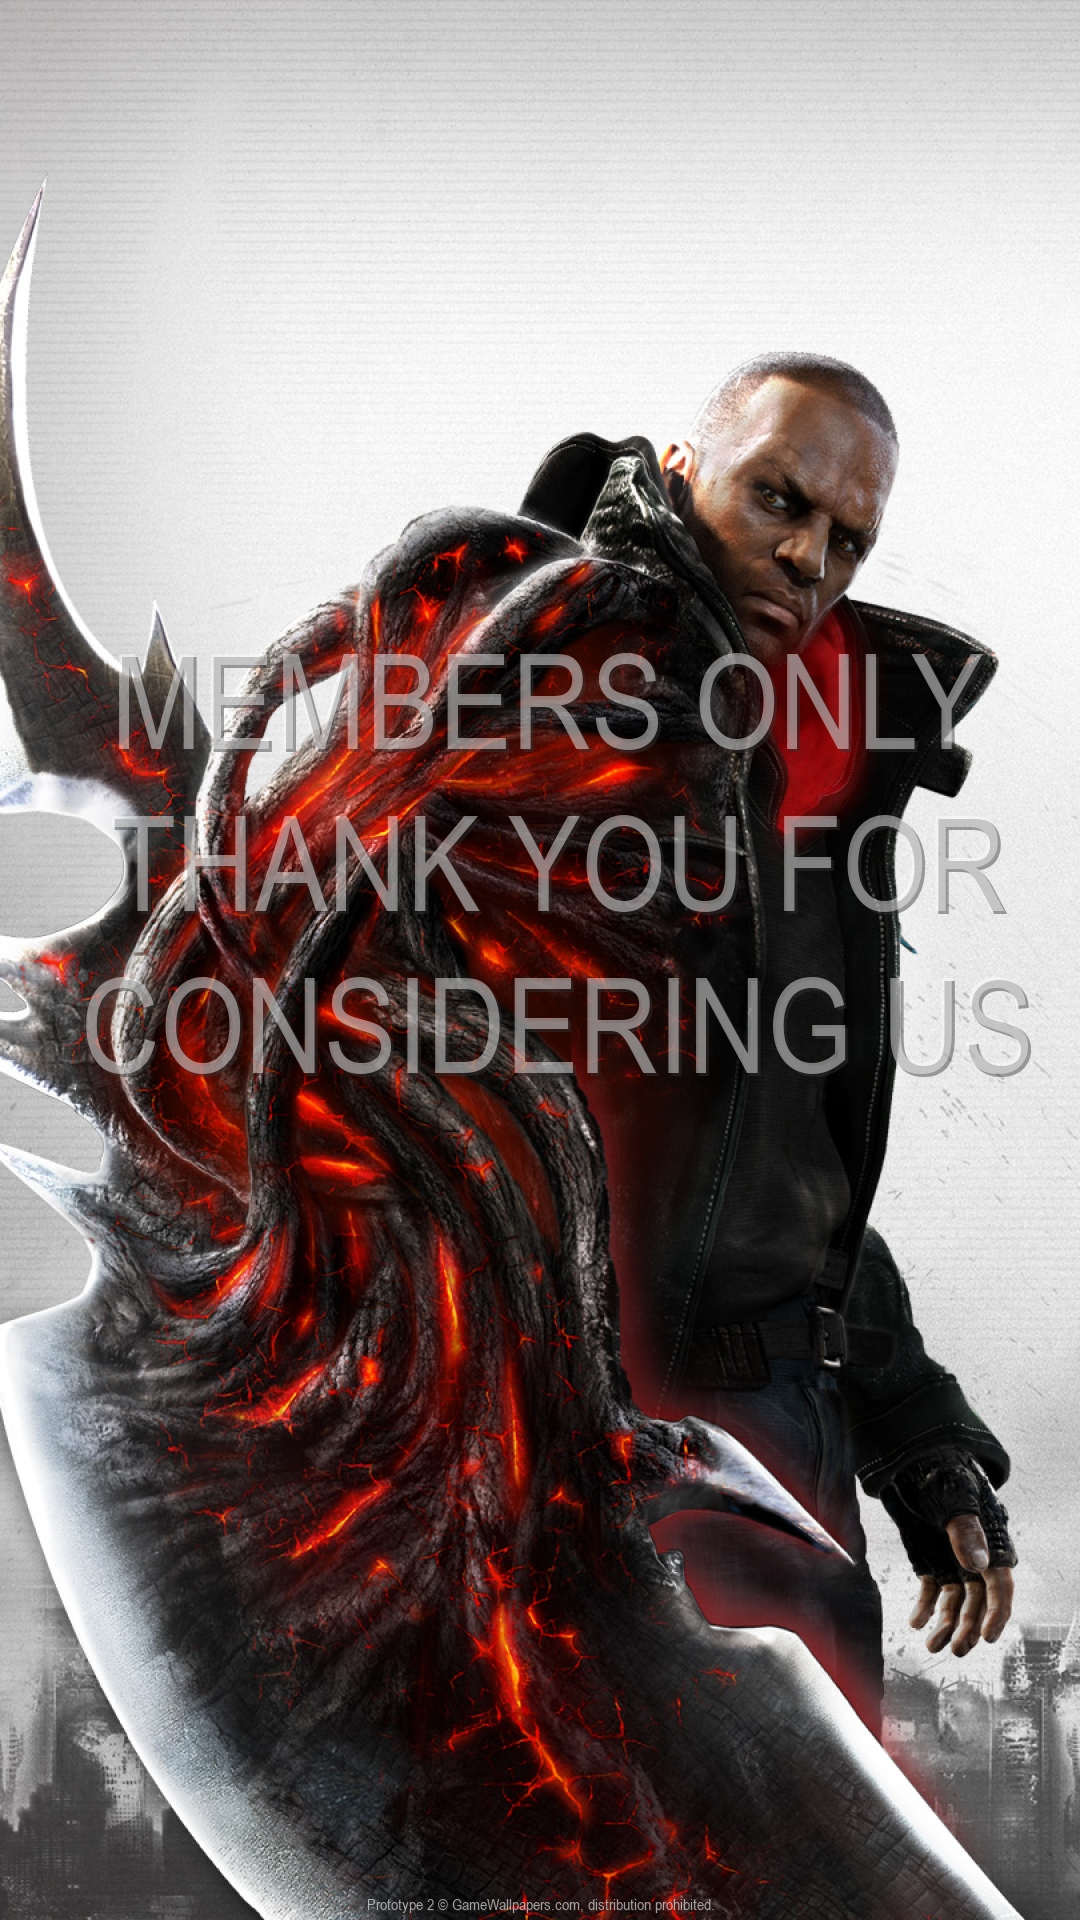 Prototype 2 1920x1080 Mobile wallpaper or background 05